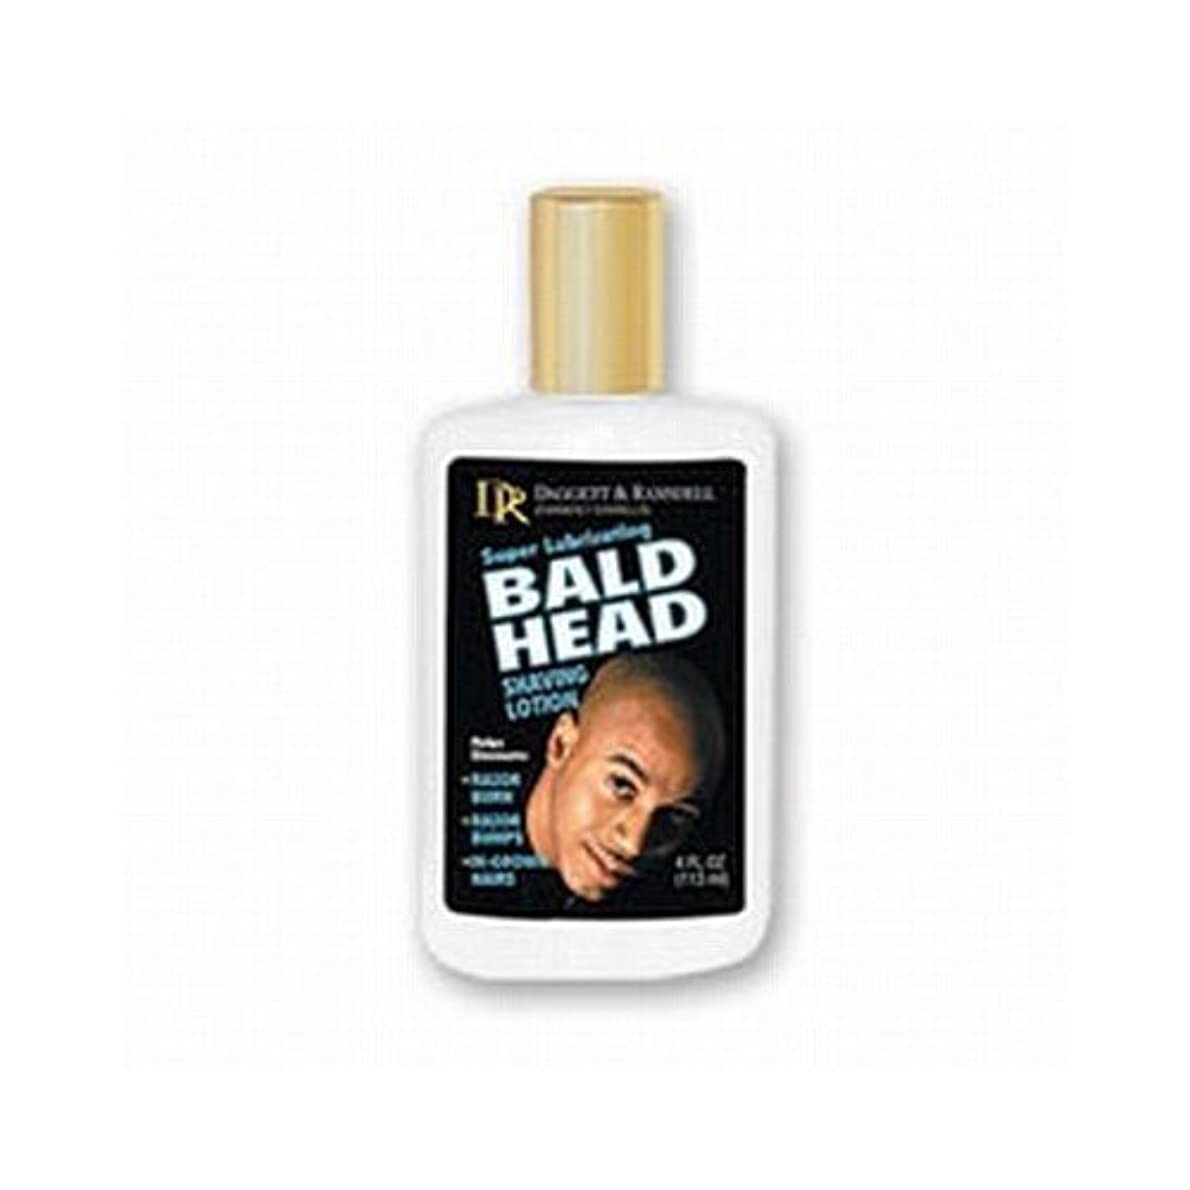 透明に試験佐賀Daggett & Ramsdell Super Lubricating Bald Head Shaving Lotion Hair Removal Products (並行輸入品)